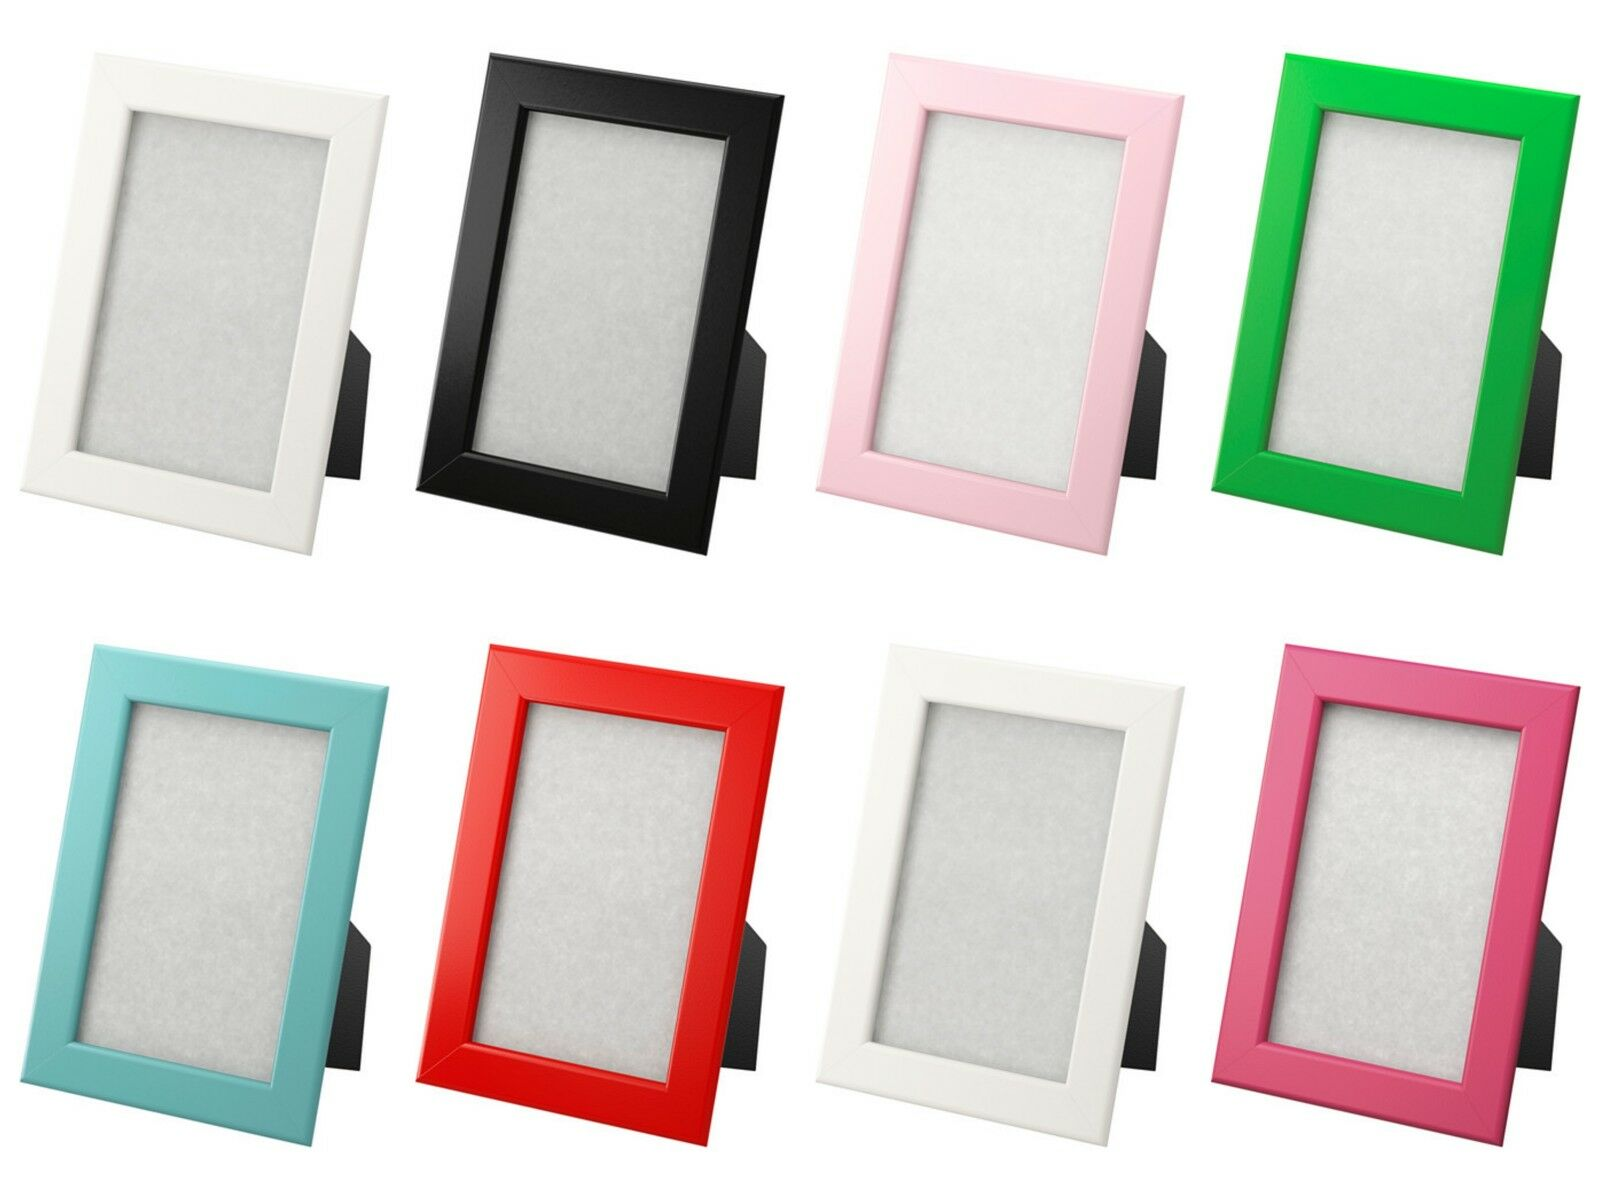 IKEA Tolsby Fronted Adverbials Frame  ikea tolsby frame